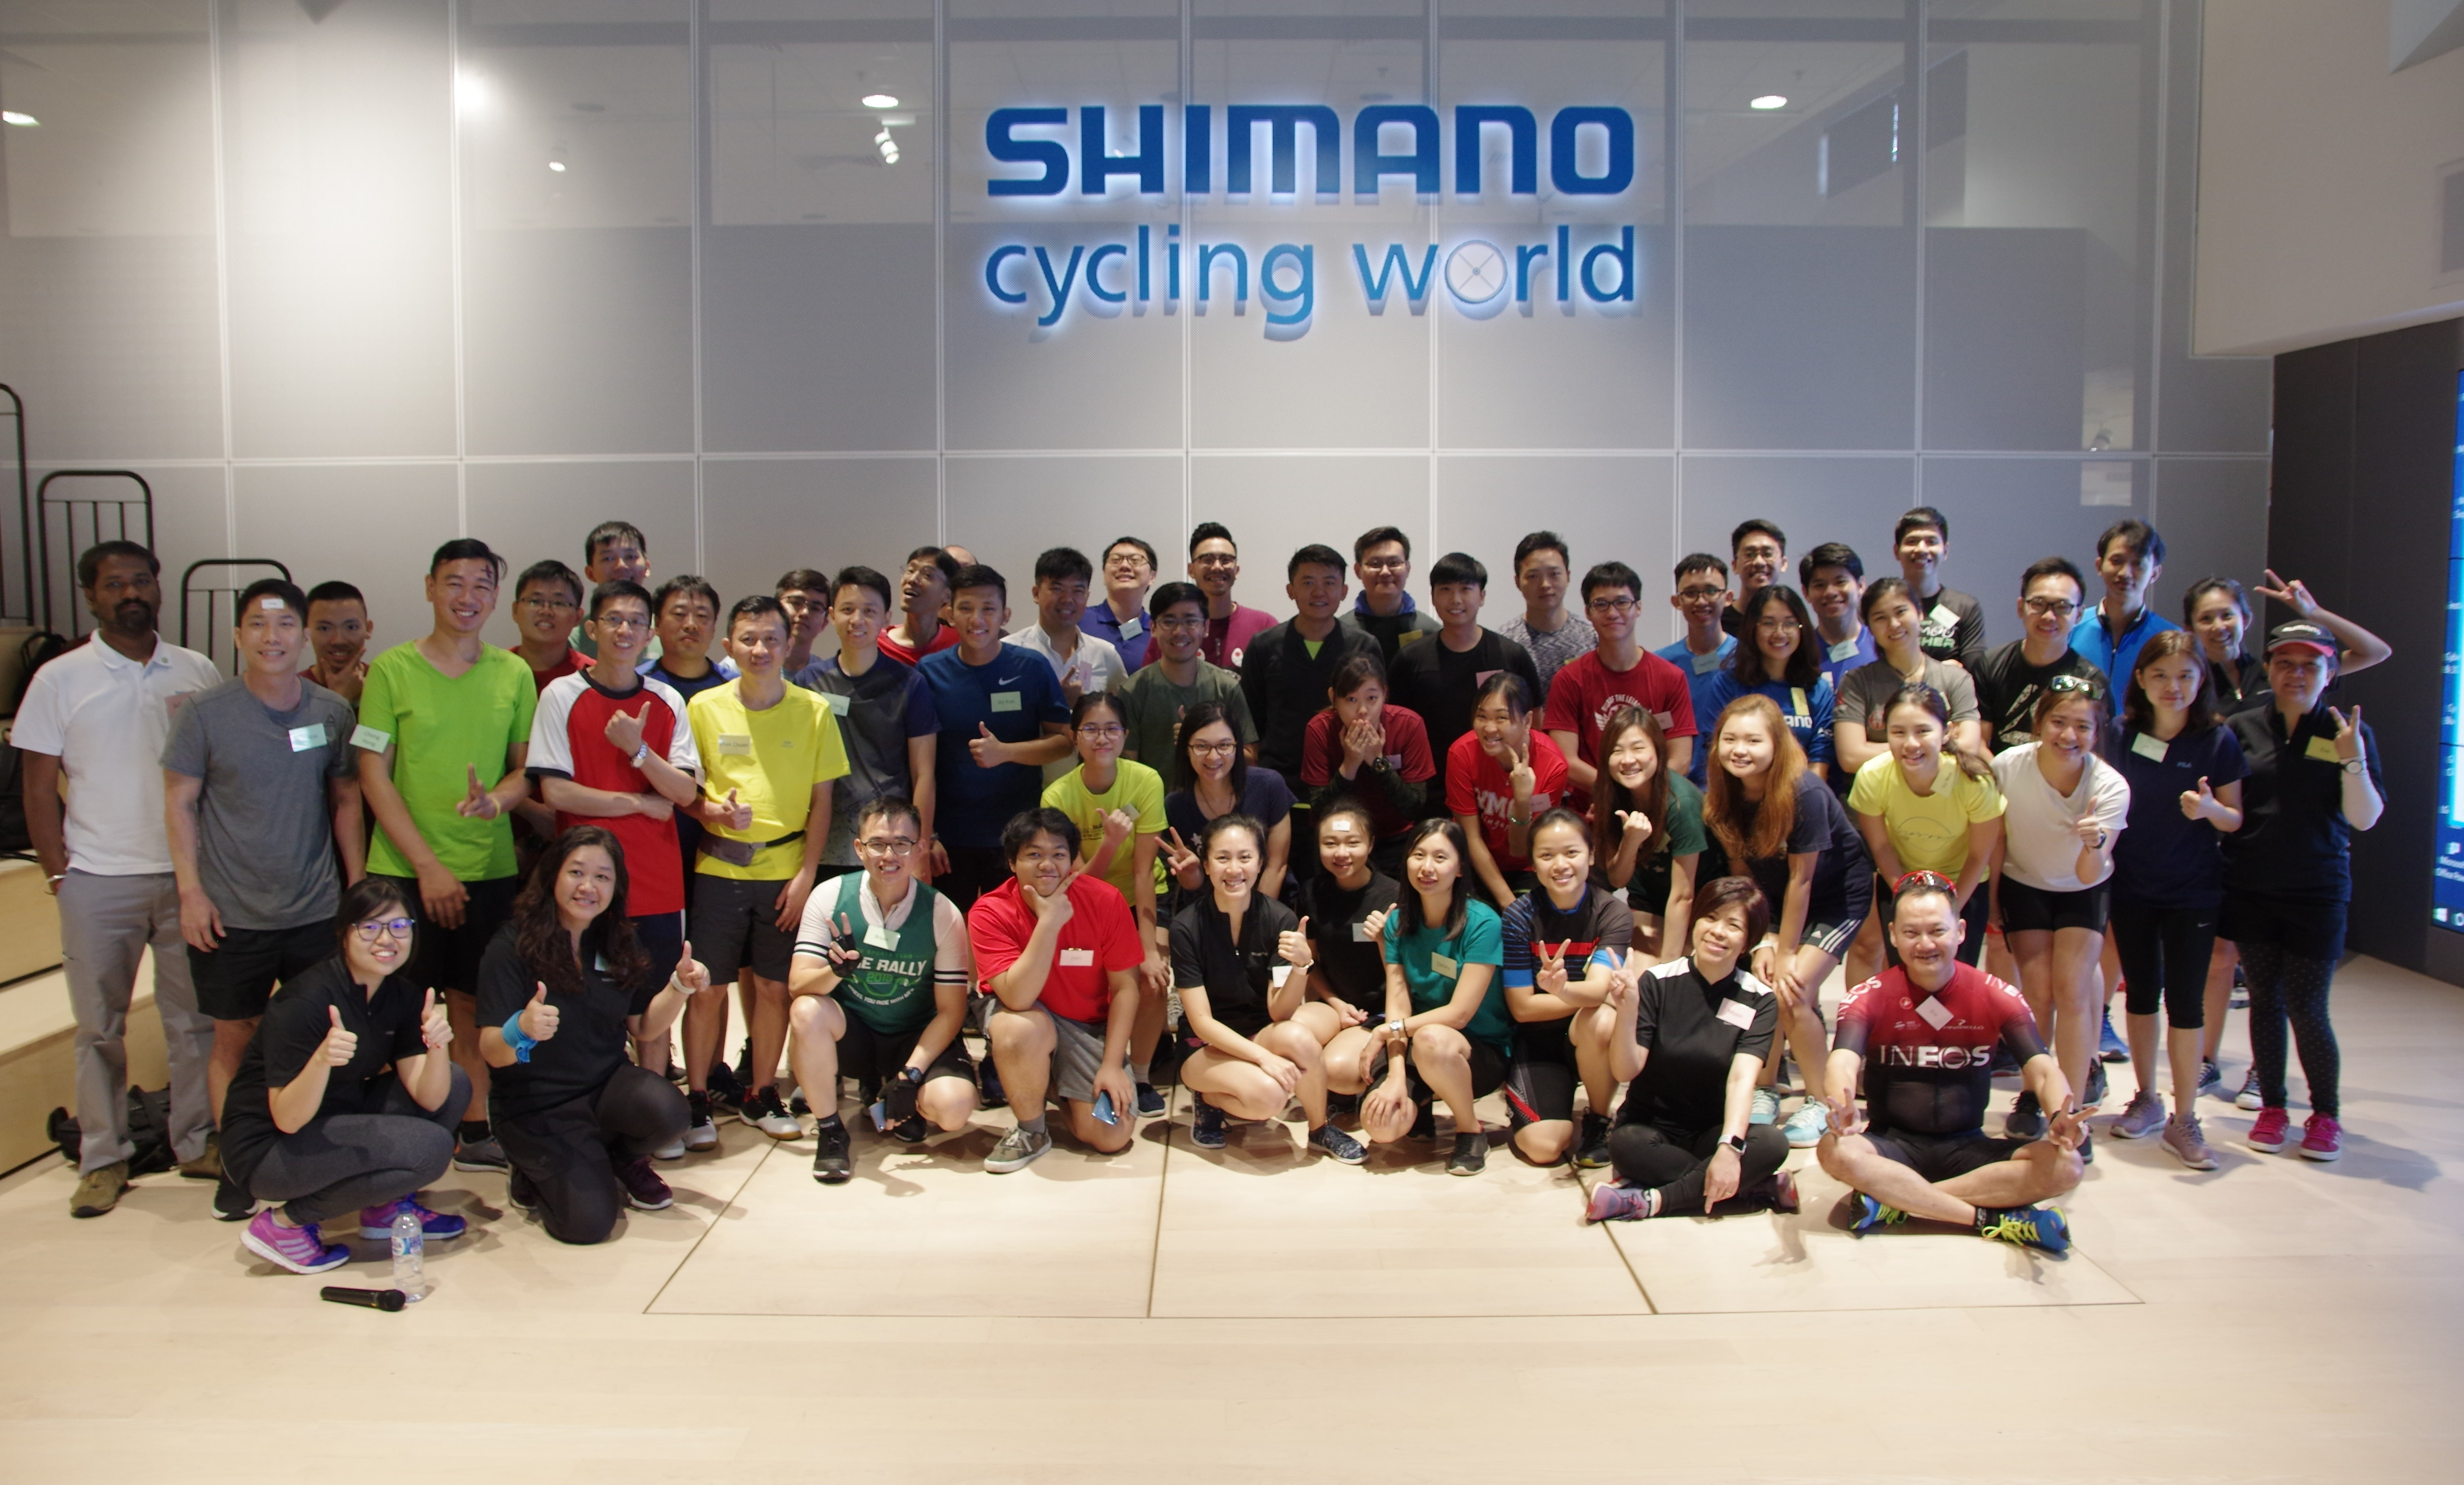 1a66b3d1800 Shimano is a renowned name in the bicycle components and fishing tackles  industry. At Shimano, we take pride in producing high quality and  innovative ...